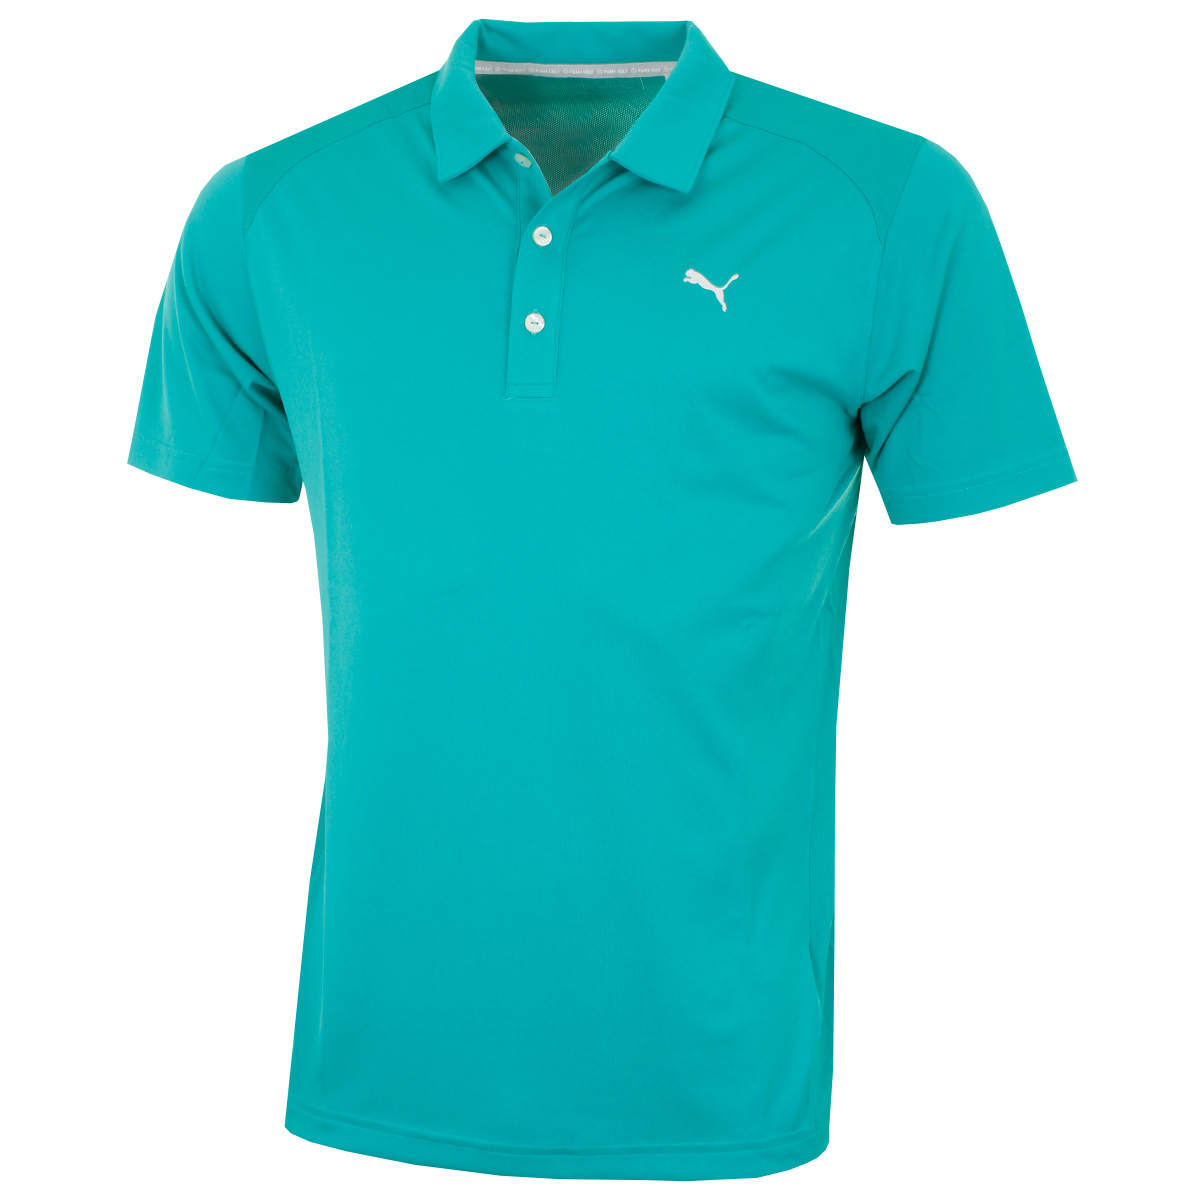 Puma golf ss 2016 mens essential pounce polo shirt 570462 for Mens puma golf shirts